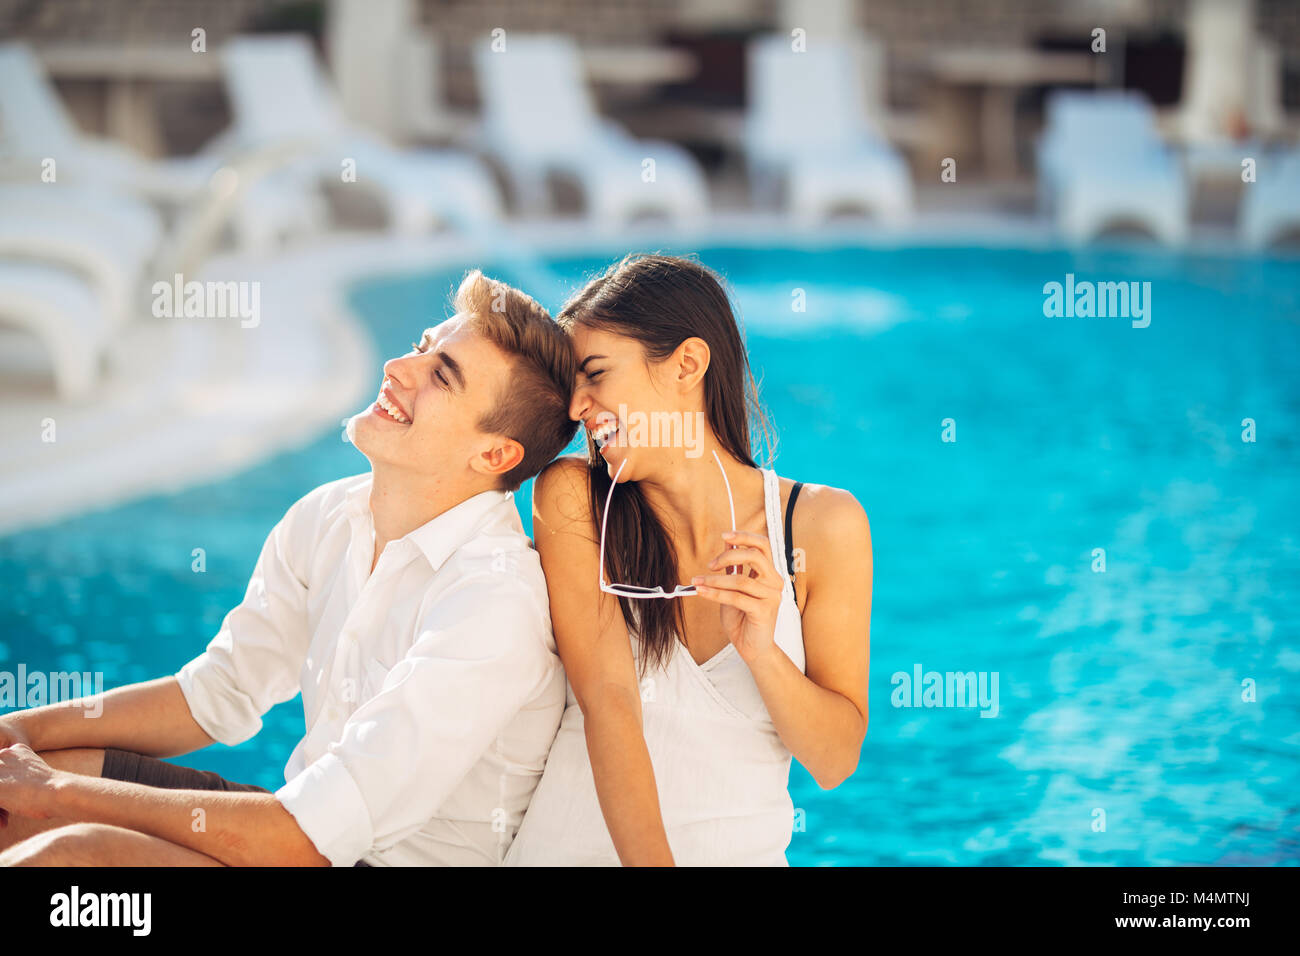 Emo couple stock photos emo couple stock images alamy for Couples spa weekend getaway